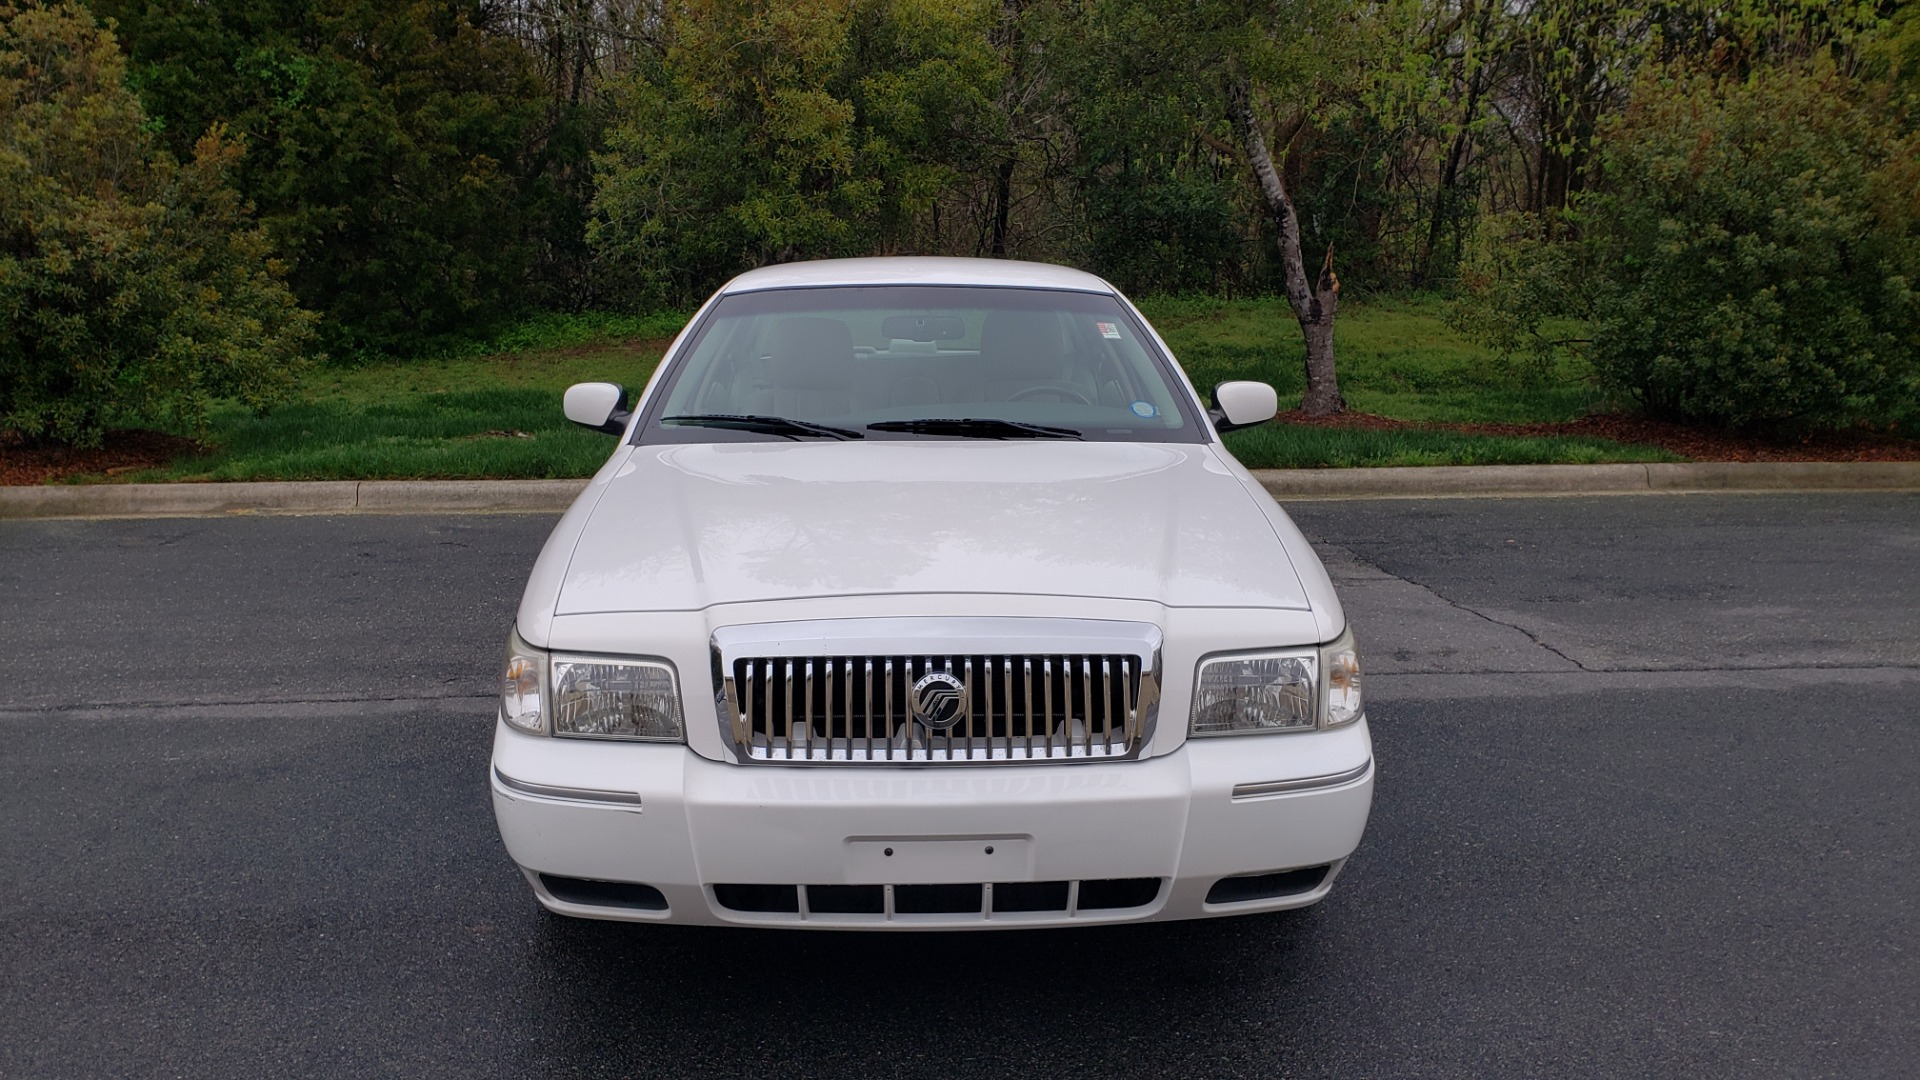 Used 2011 Mercury GRAND MARQUIS LS / 4.6L V8 / 4-SPD AUTO / KEYLESS ENTRY / LOW MILES for sale Sold at Formula Imports in Charlotte NC 28227 16